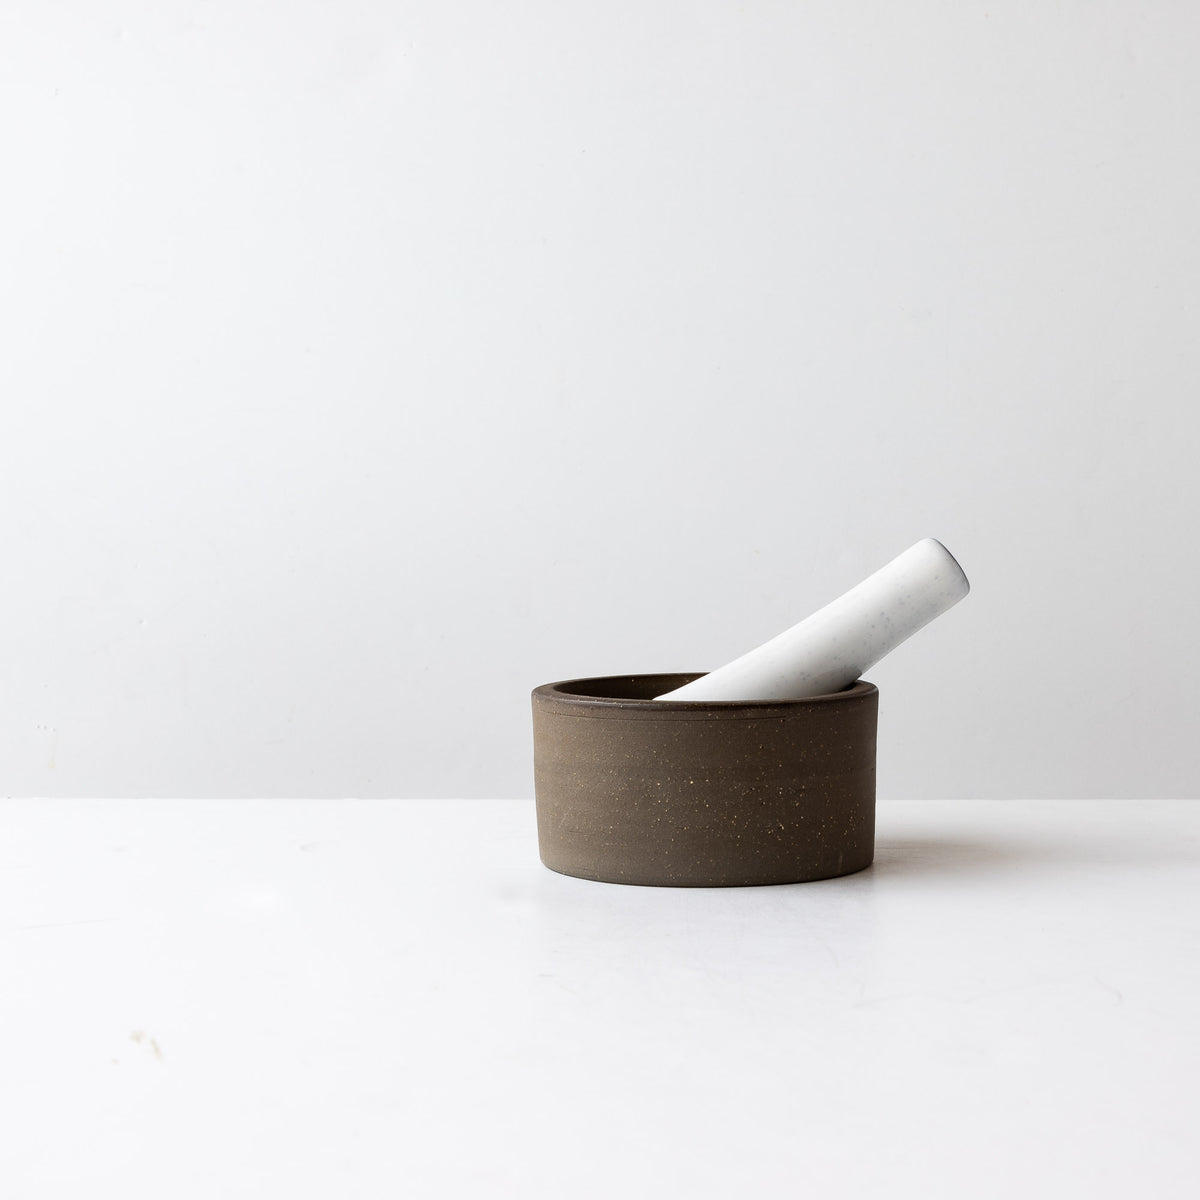 Grey Clay - Creamy White Glaze - Handmade Contemporary Ceramic Mortar & Pestle Set - Sold by Chic & Basta